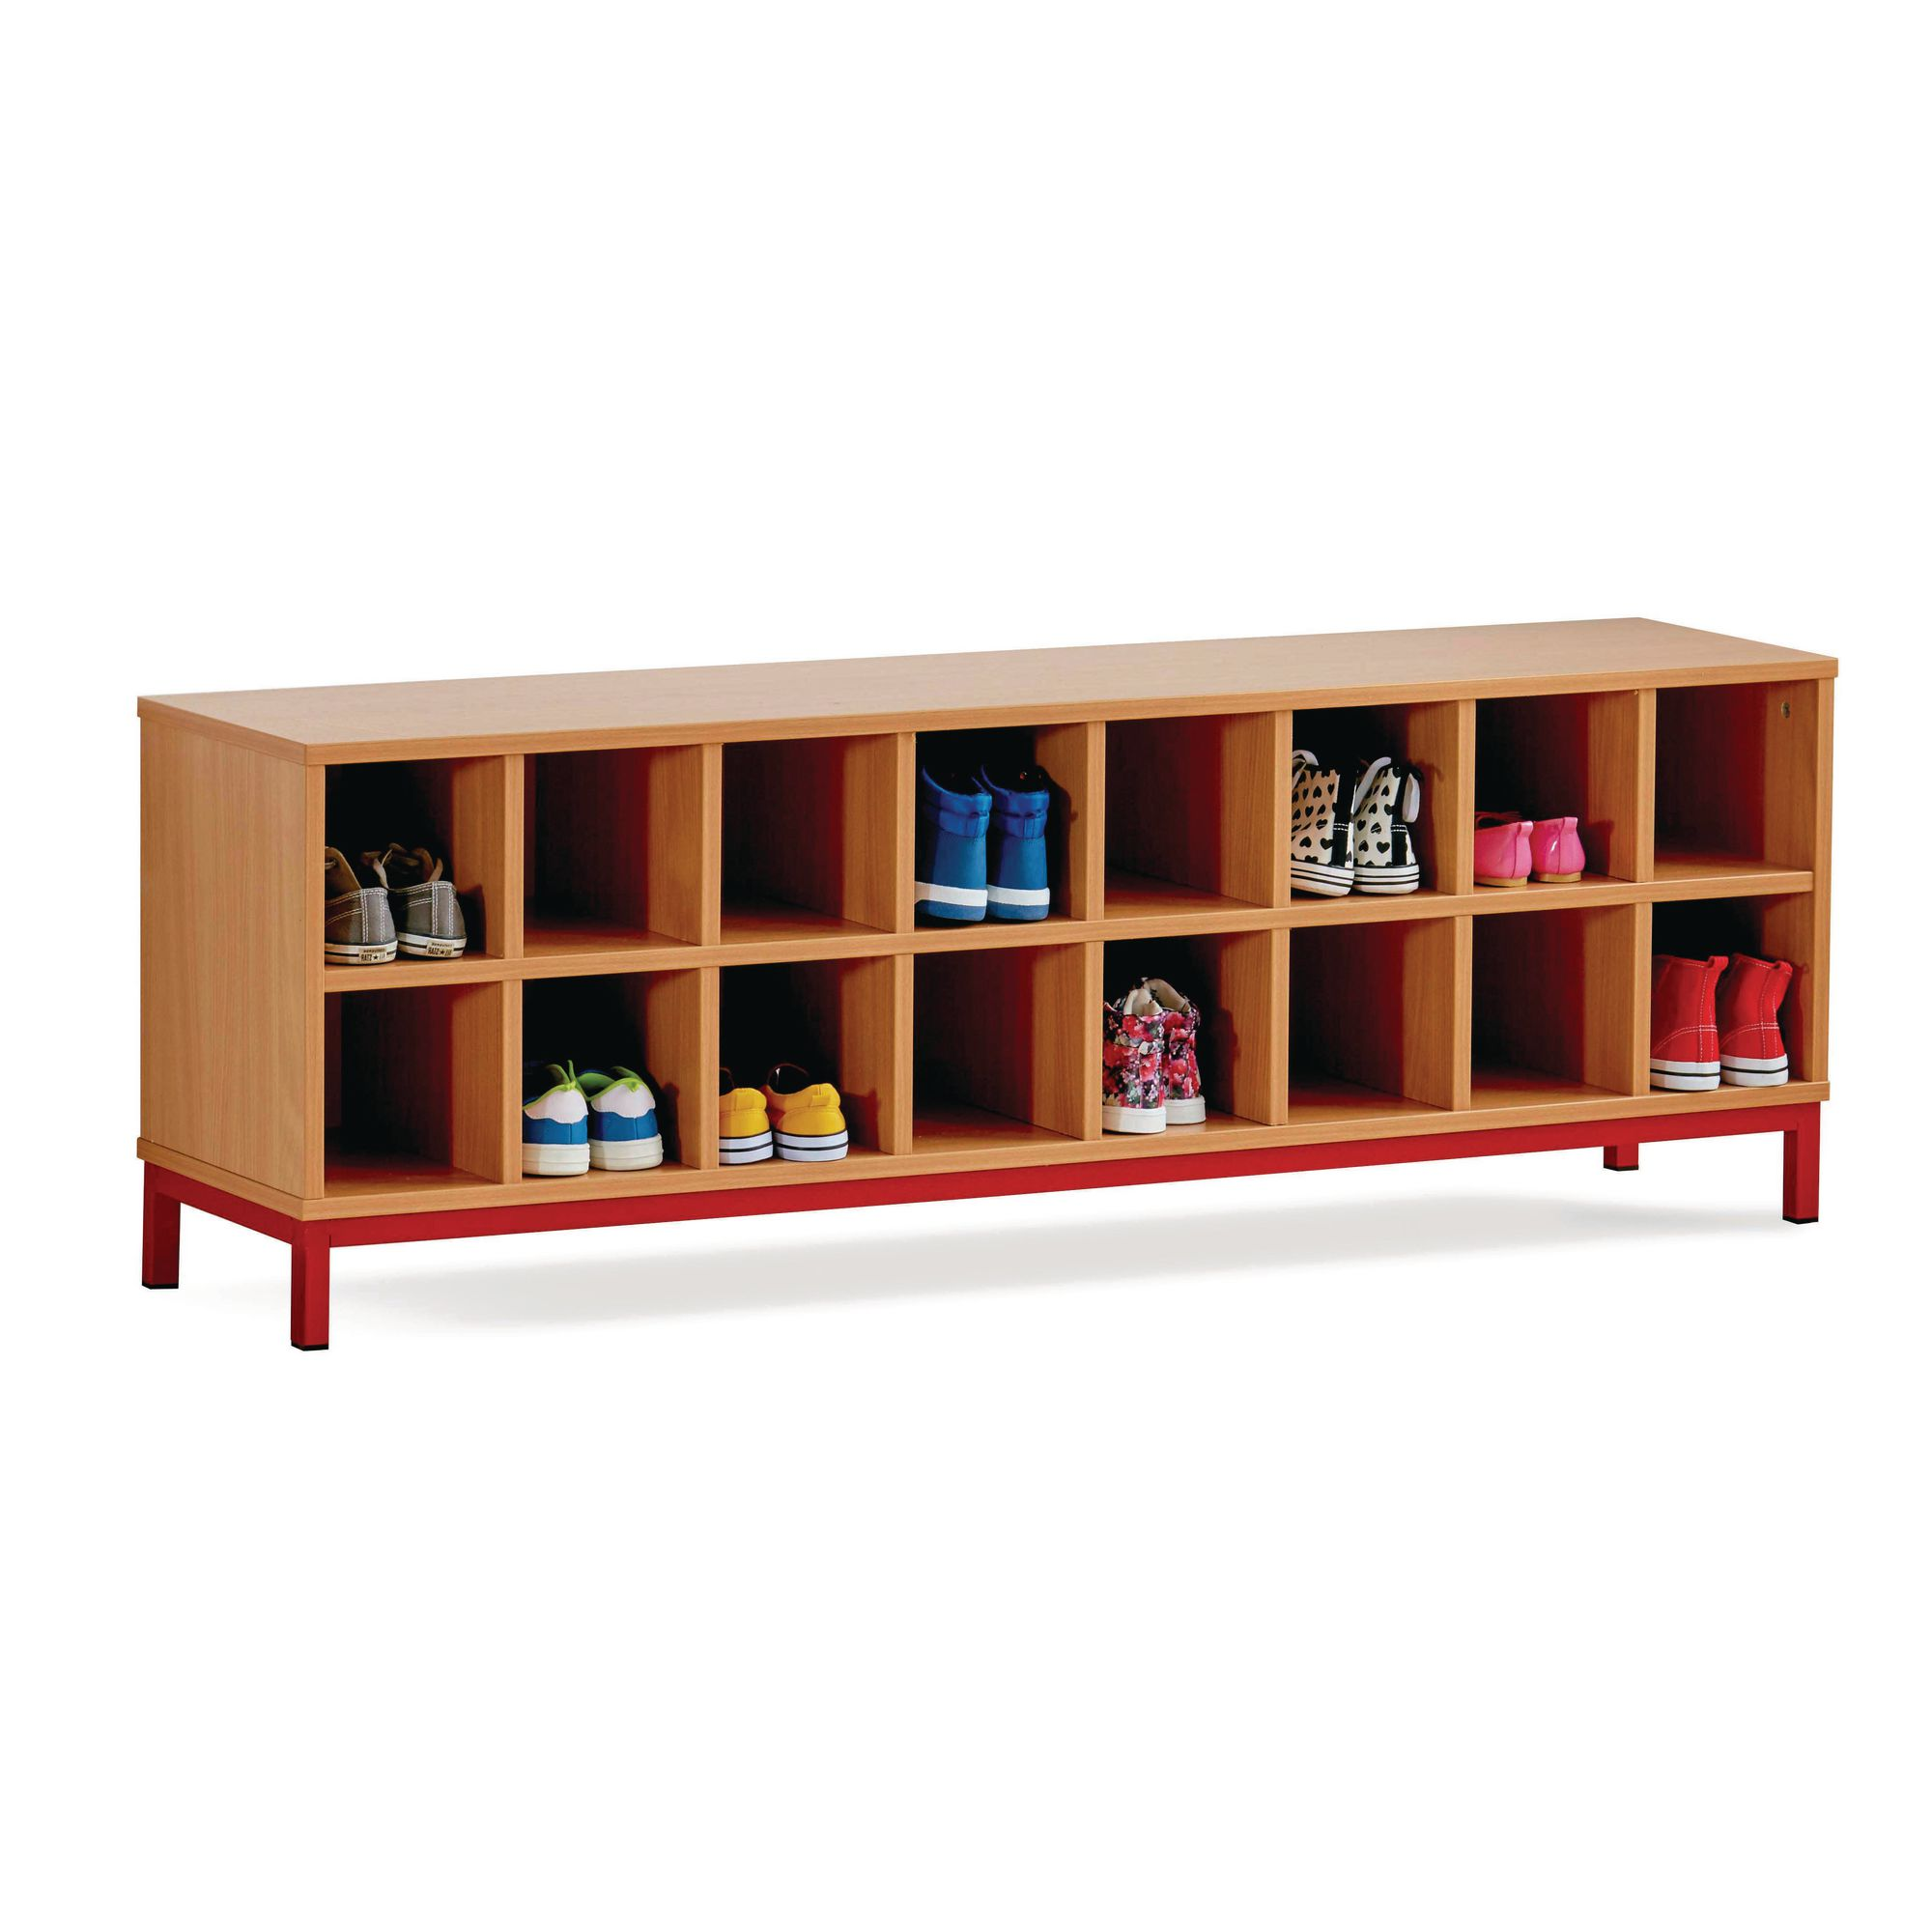 Maple 16 Open Bench Tangerine